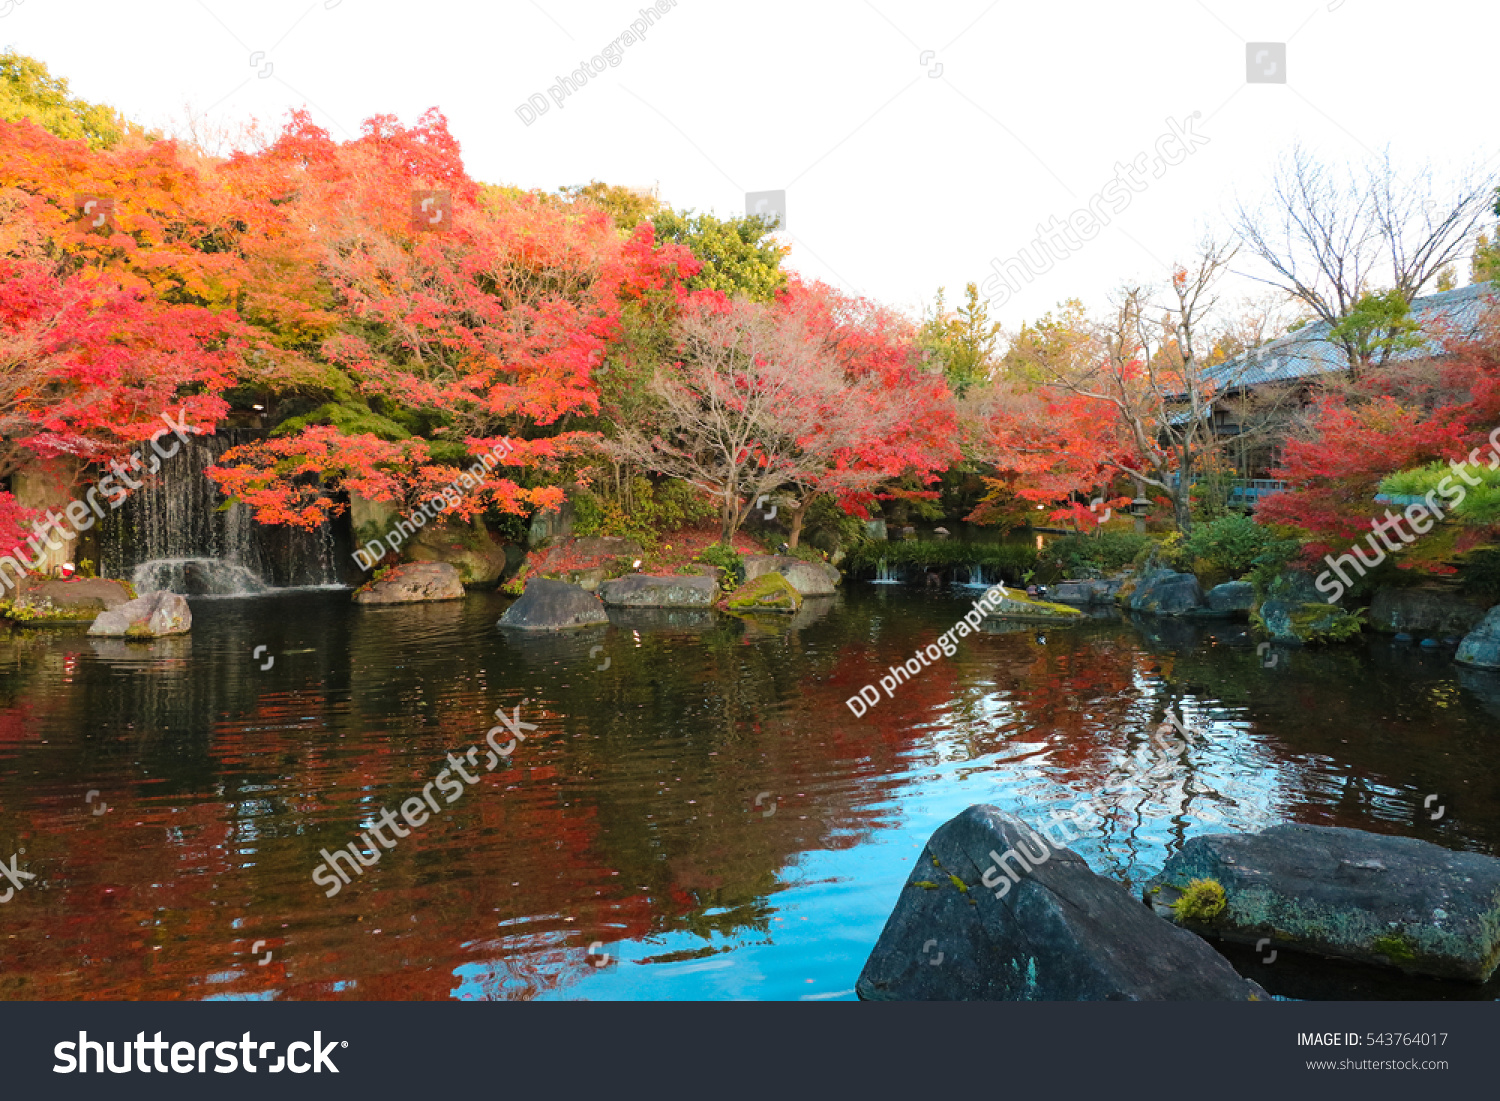 Red Maple Garden Paddling Pool Stock Photo (Edit Now) 543764017 ...